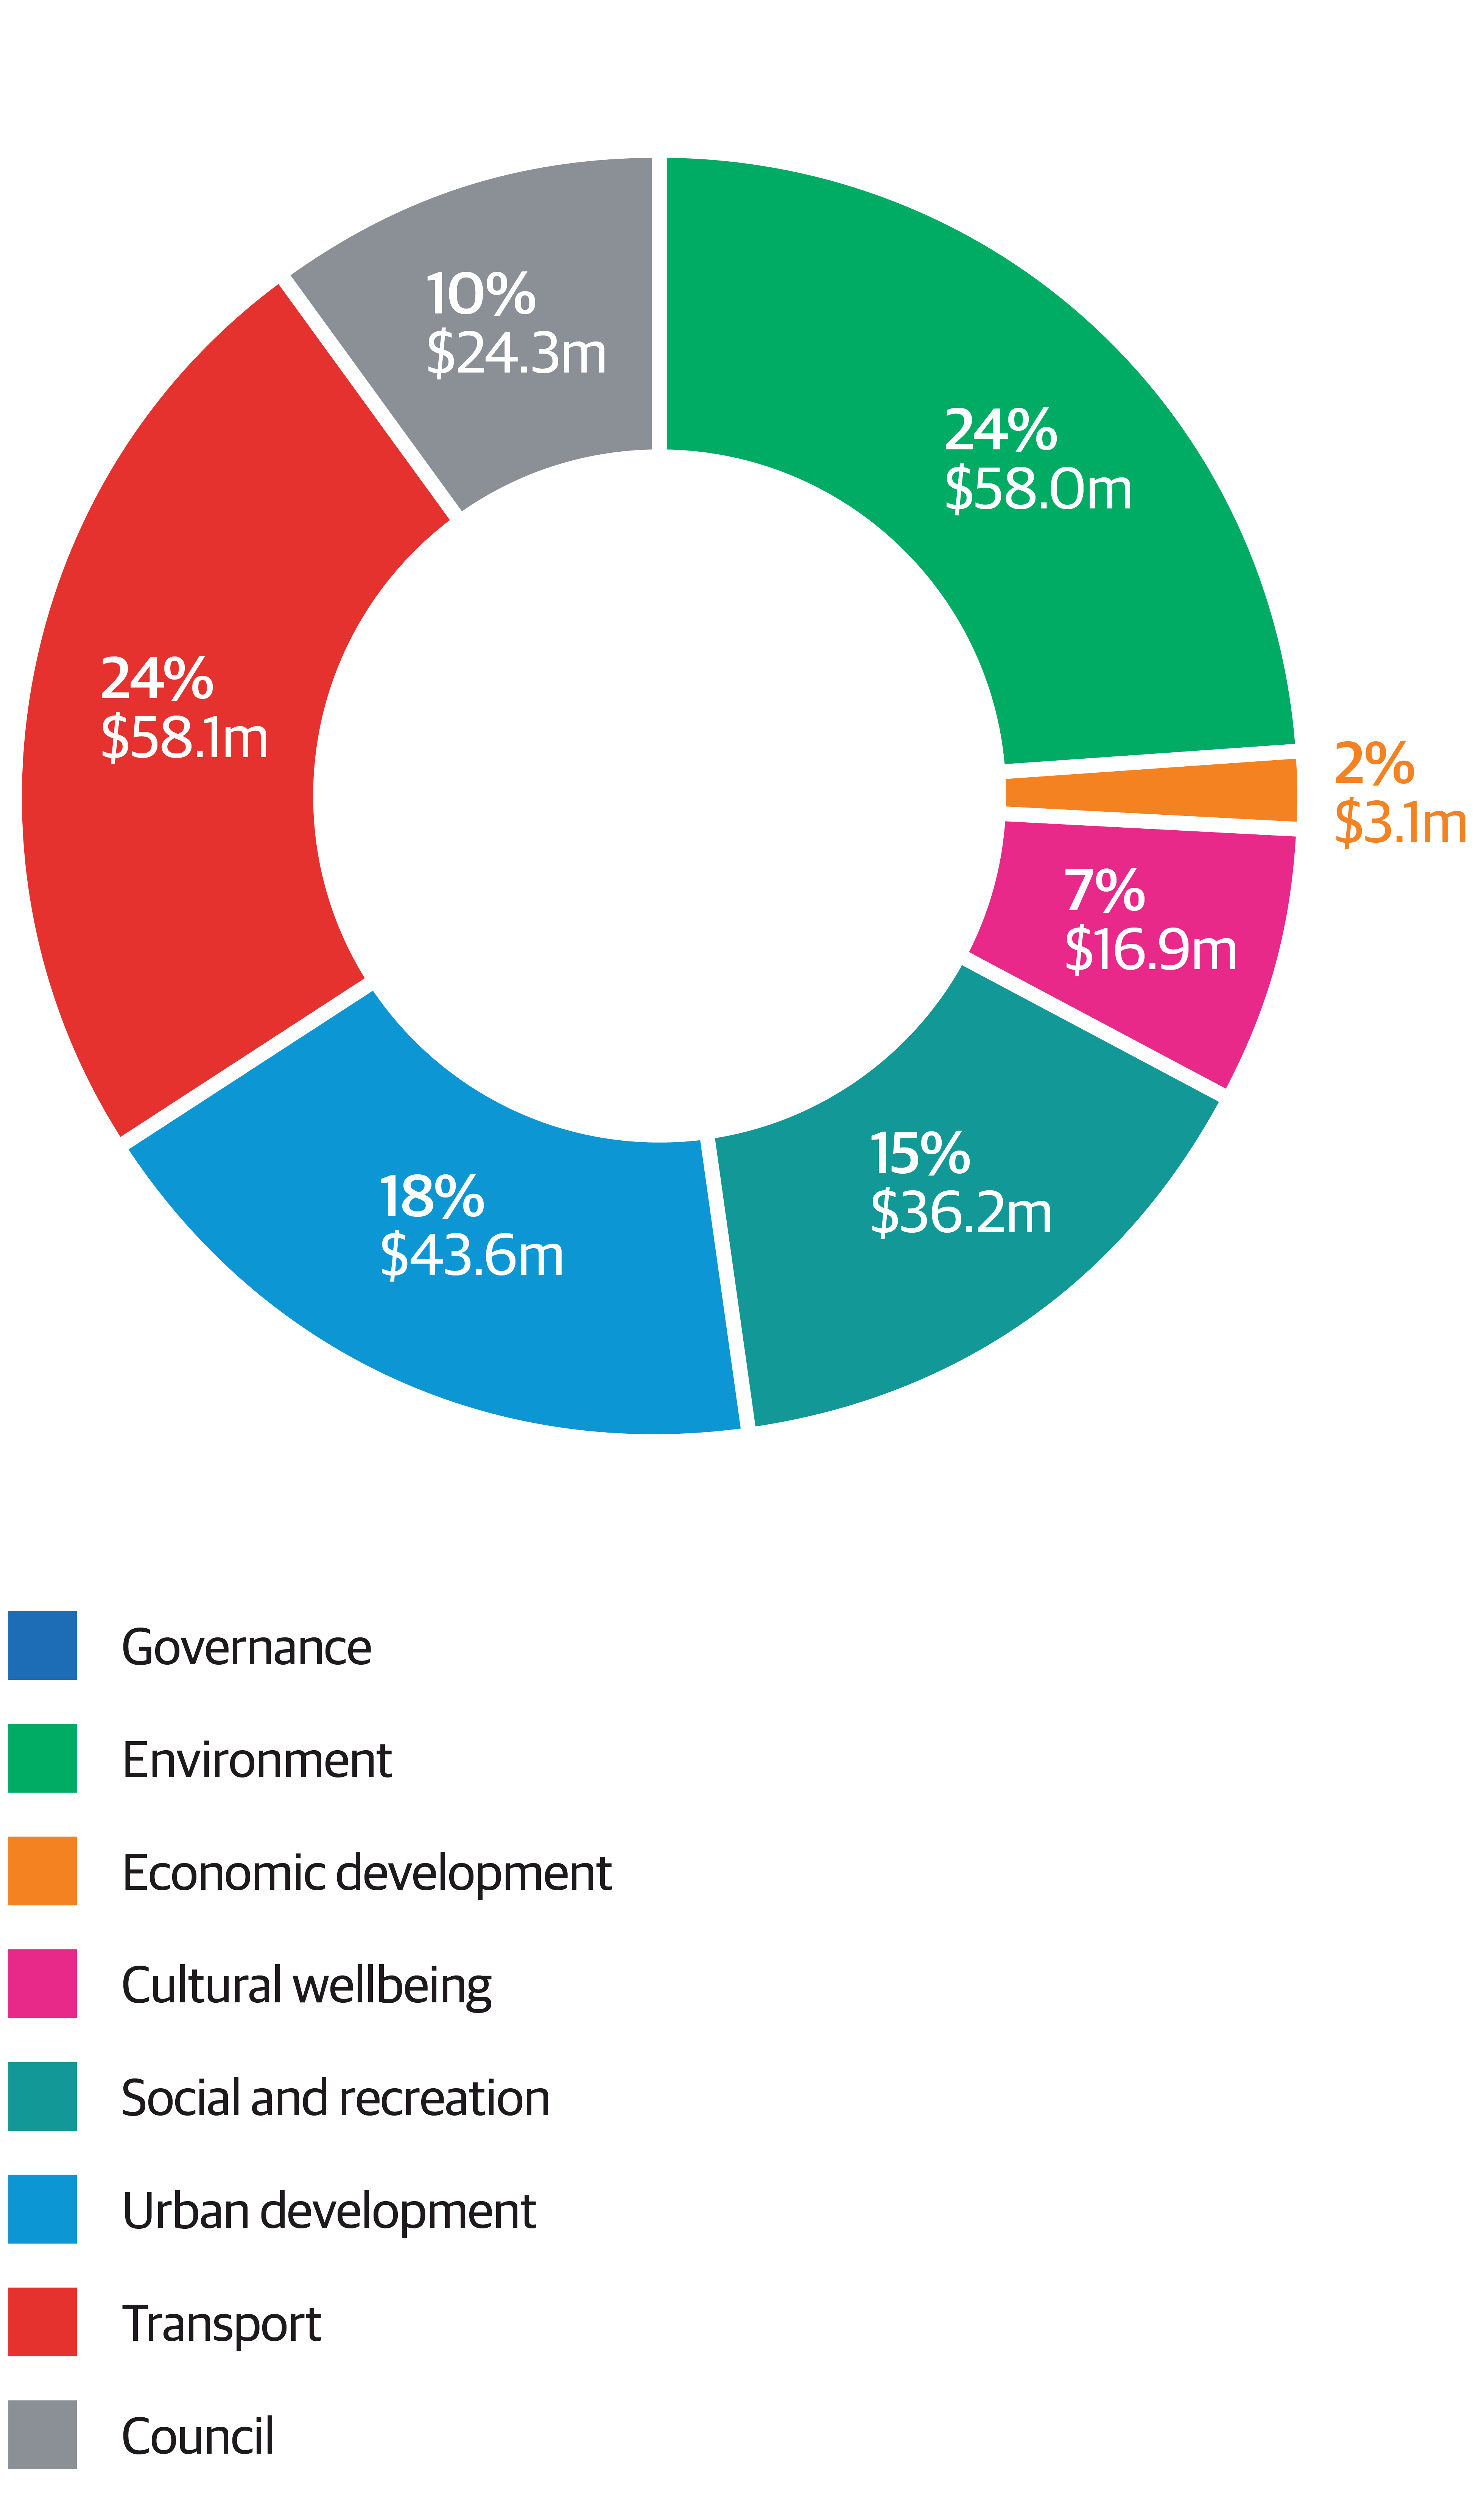 The graphic illustrates the proportion of planned capital expenditure in each of our activity areas. The biggest areas of capital expenditure are Environment, which includes the three waters, and Transport, each at 24 percent of the total capex of $240 million. Urban Development, Social and Recreation, and Council organisational projects follow at 18, 15 and 10 percent respectively. Arts and Culture, Economic Development, and Governance follow, each with 10 percent or less of total capital expenditure.